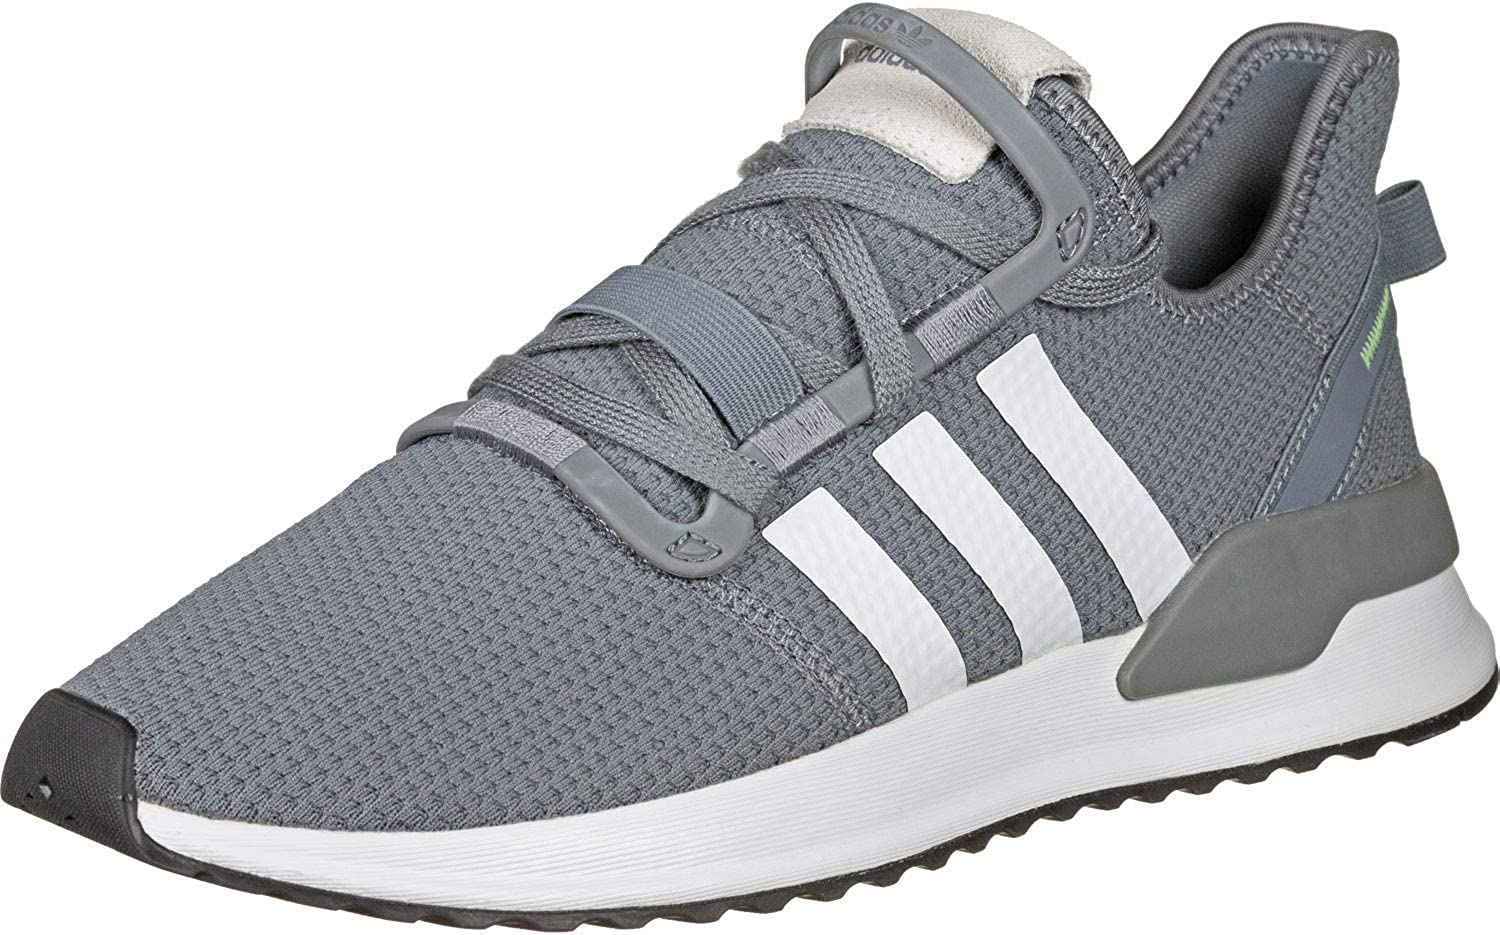 Adidas U Path Run shoes Grey FTWR White Black